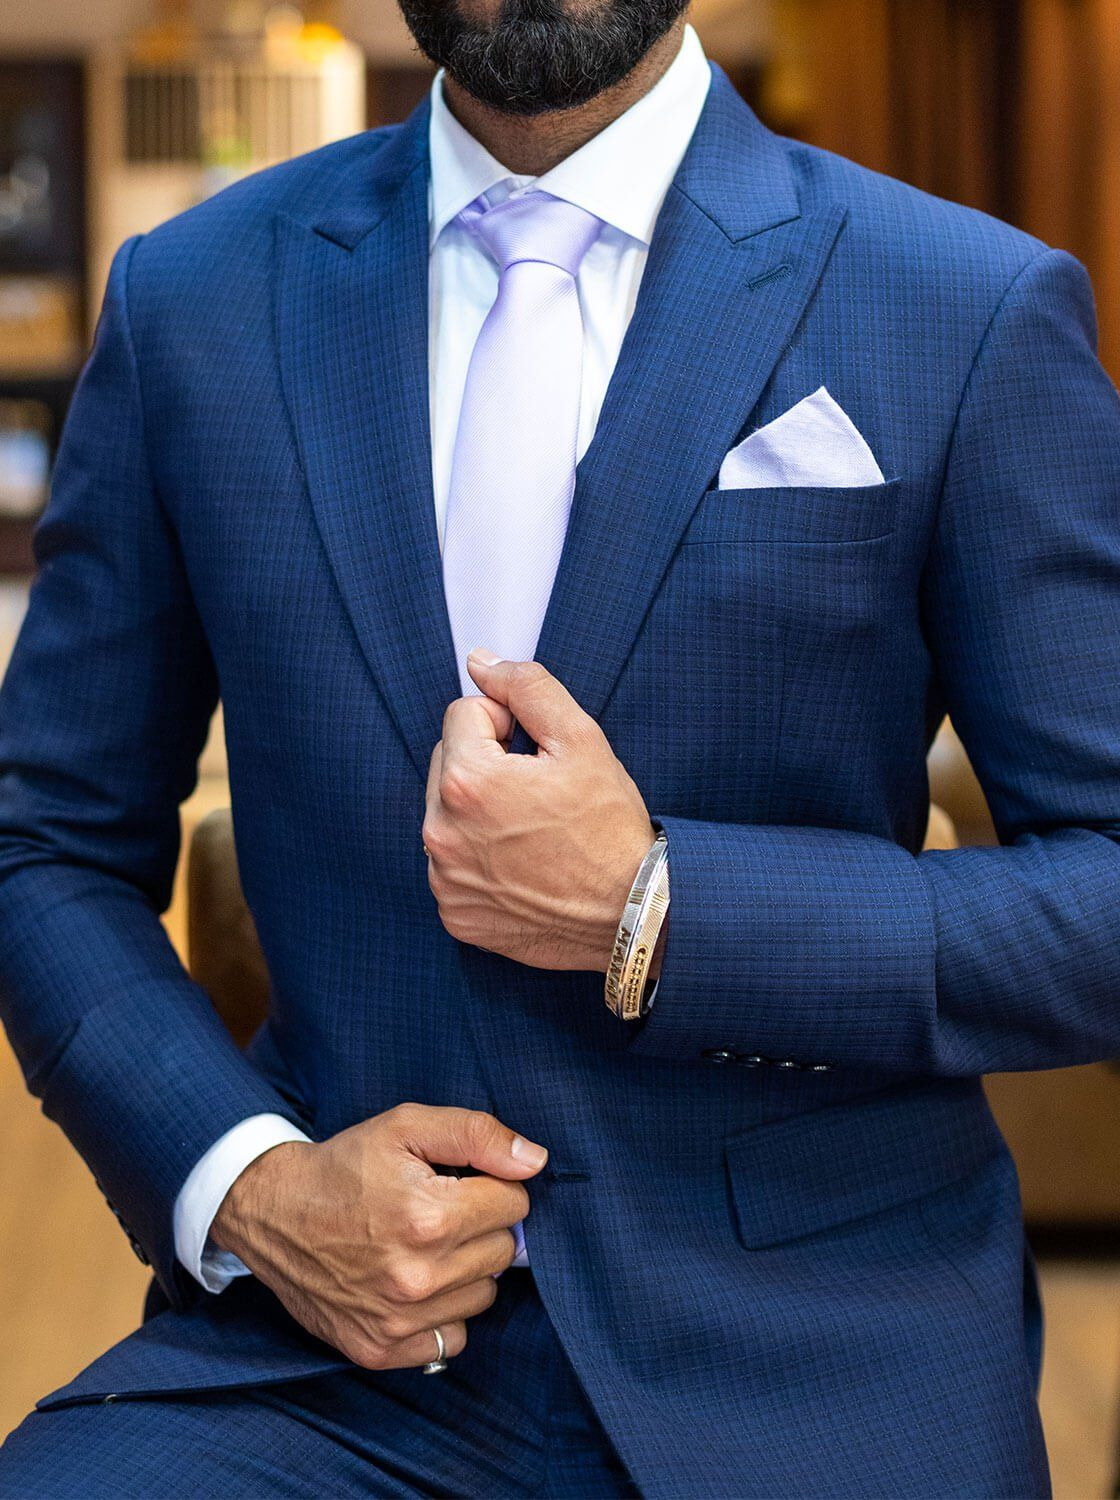 Bespoke tailors in Bangkok | Patrick & Co